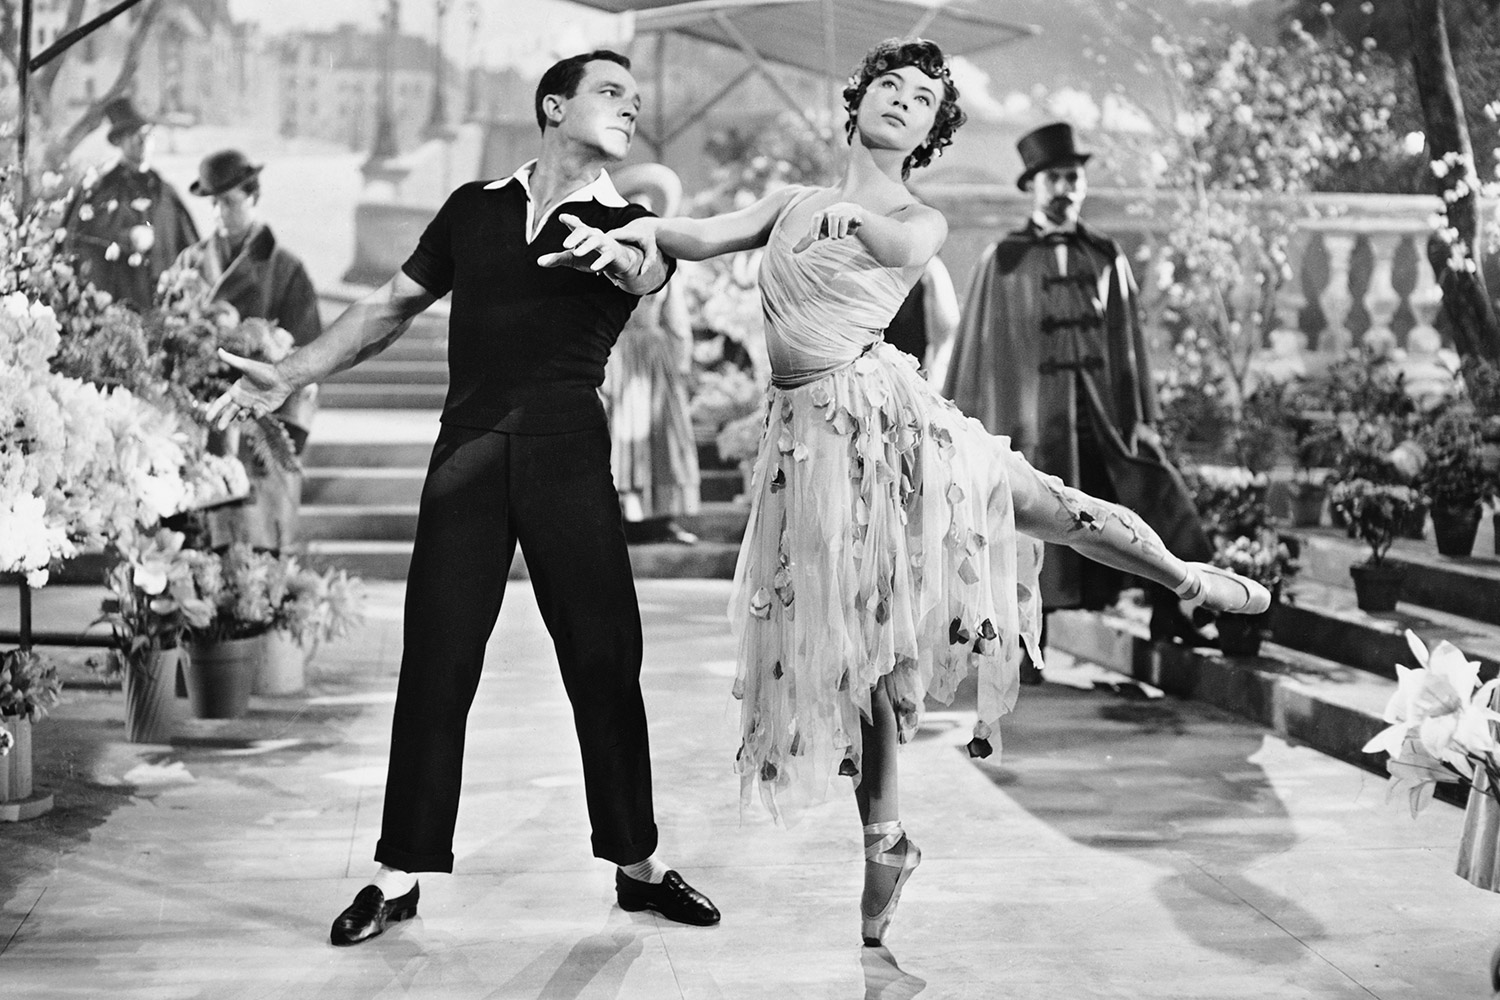 Gene Kelly and Leslie Caron in An American in Paris